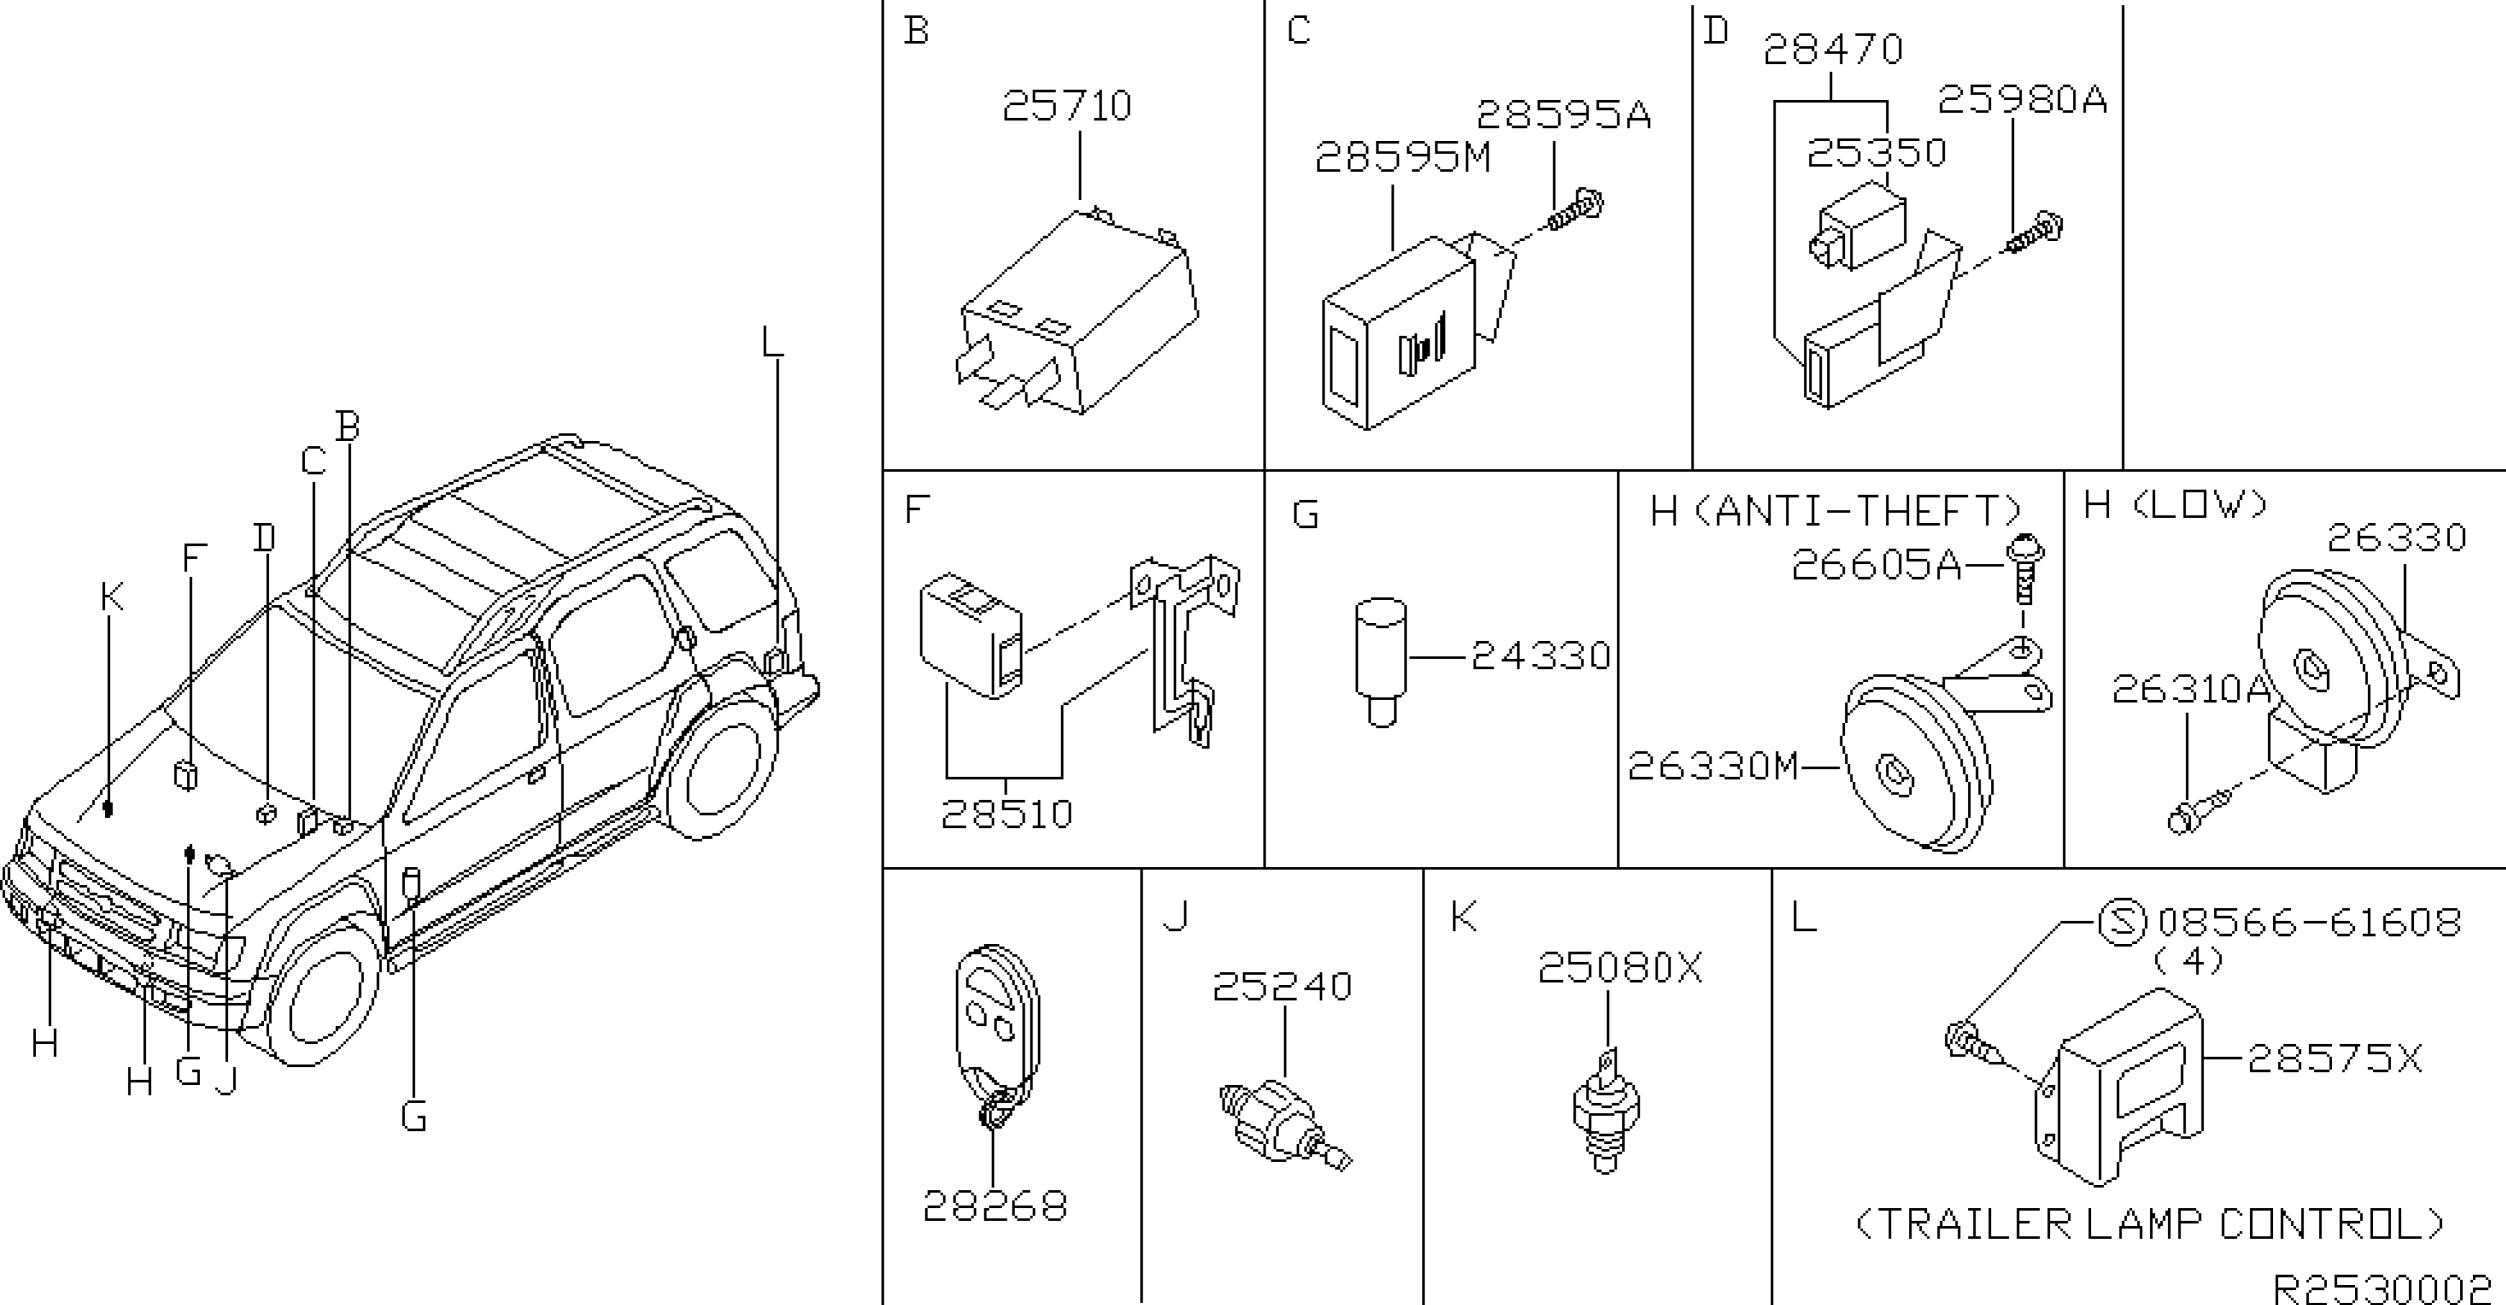 2003 Nissan Xterra Engine Diagram 2002 Nissan Xterra Oem Parts Nissan Usa Estore Of 2003 Nissan Xterra Engine Diagram